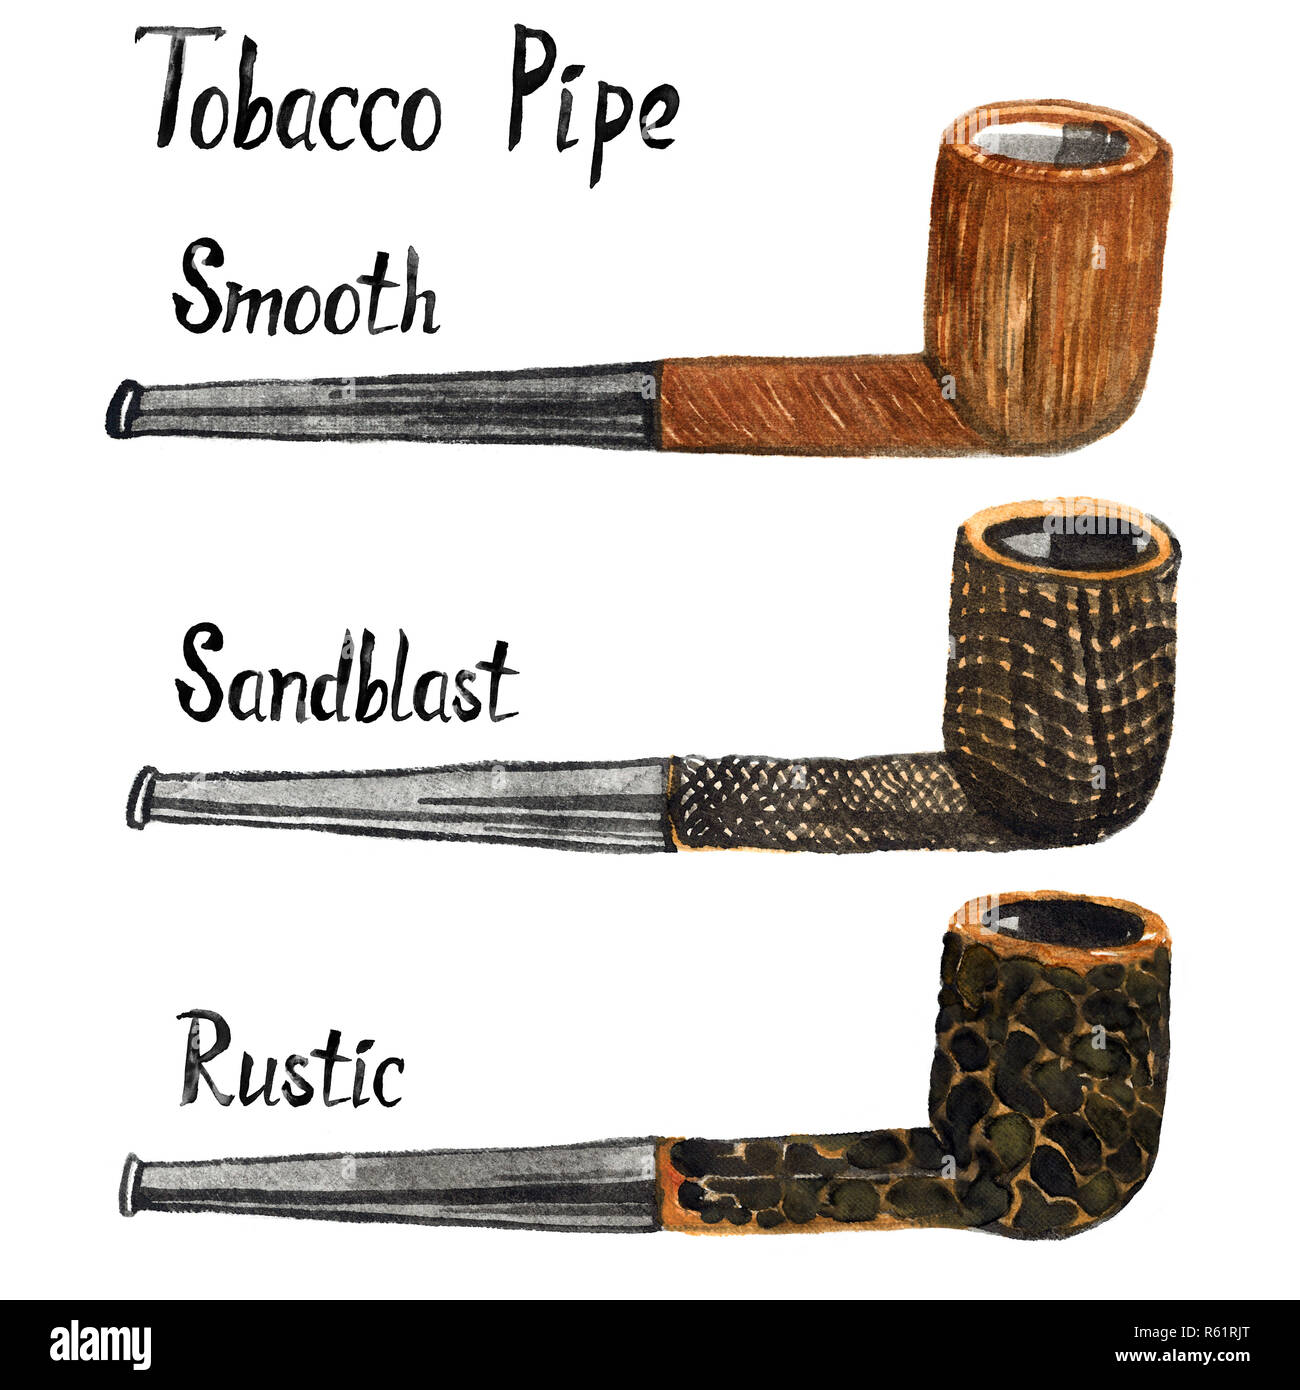 Tobacco Pipes Types (briar processing) set smooth, sandblast and rustic, isolated hand painted watercolor illustration with handwritten inscription - Stock Image